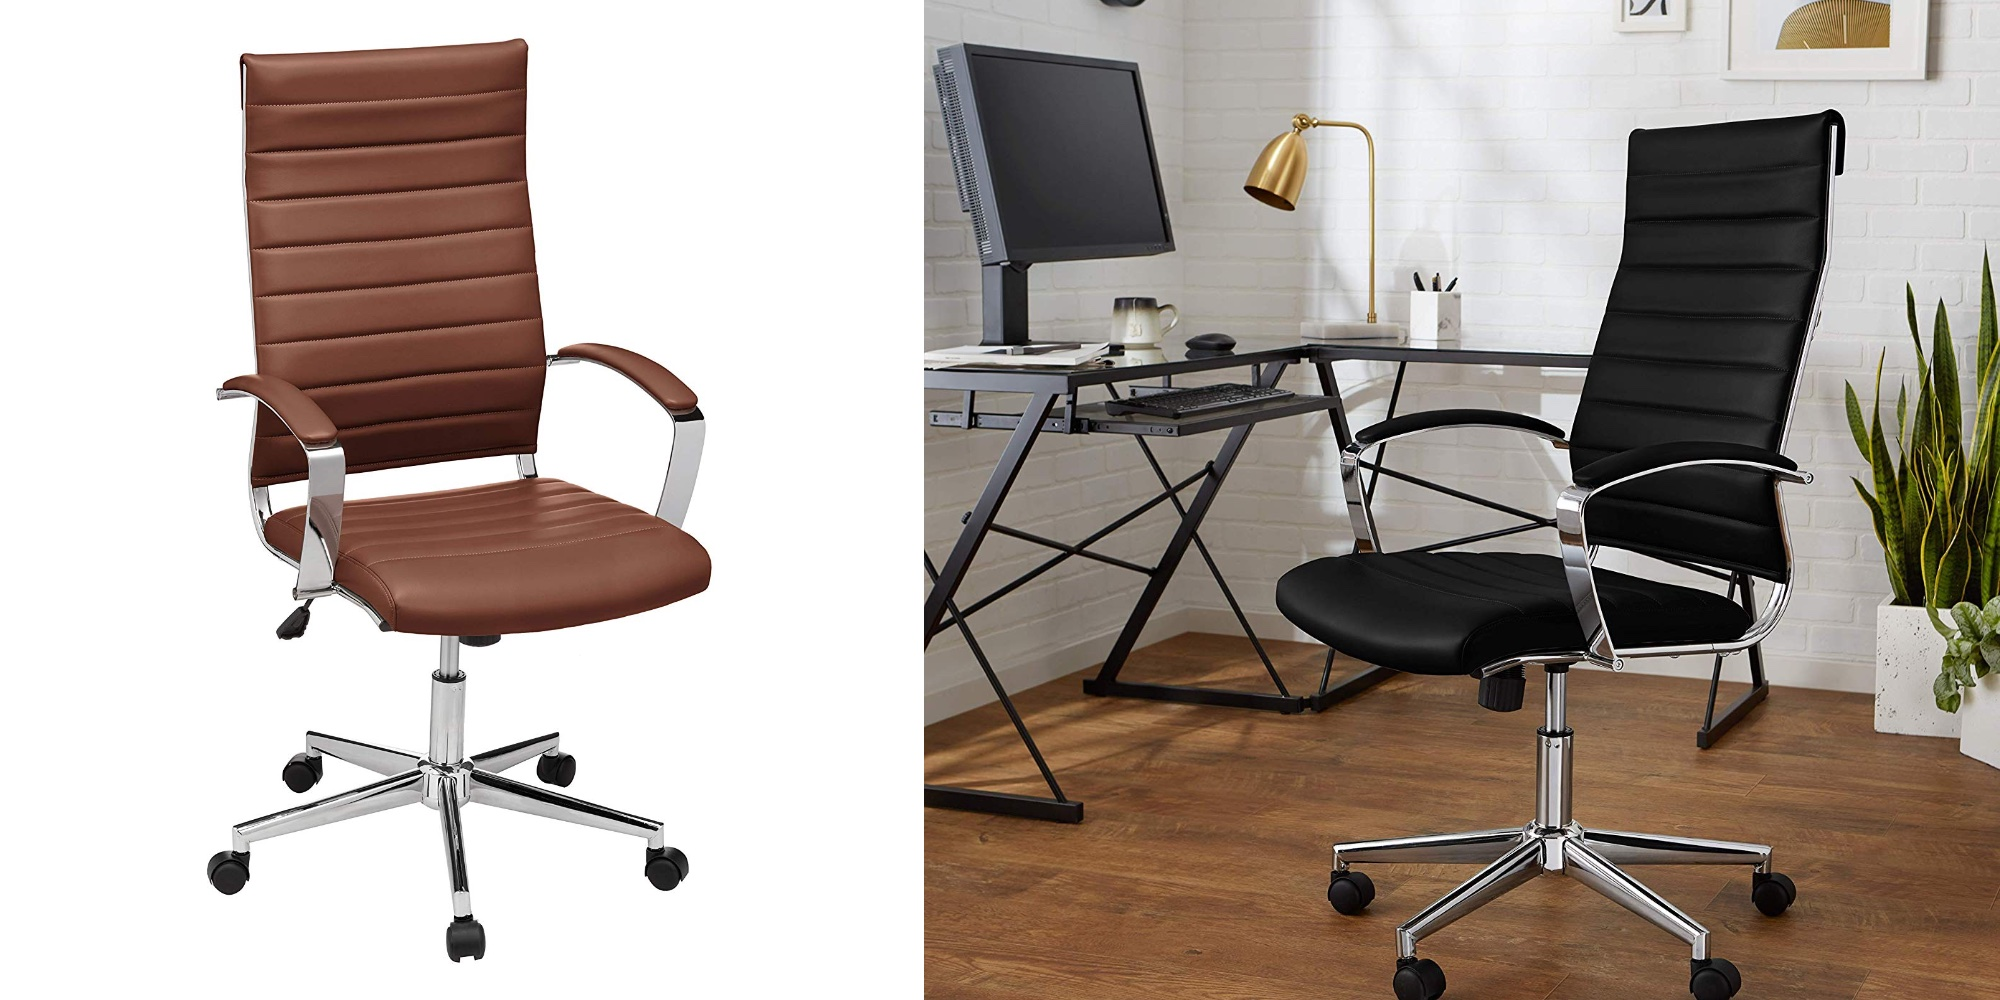 Save 20% on the AmazonBasics High-Back Executive Swivel Chair at $136 (All-time low)